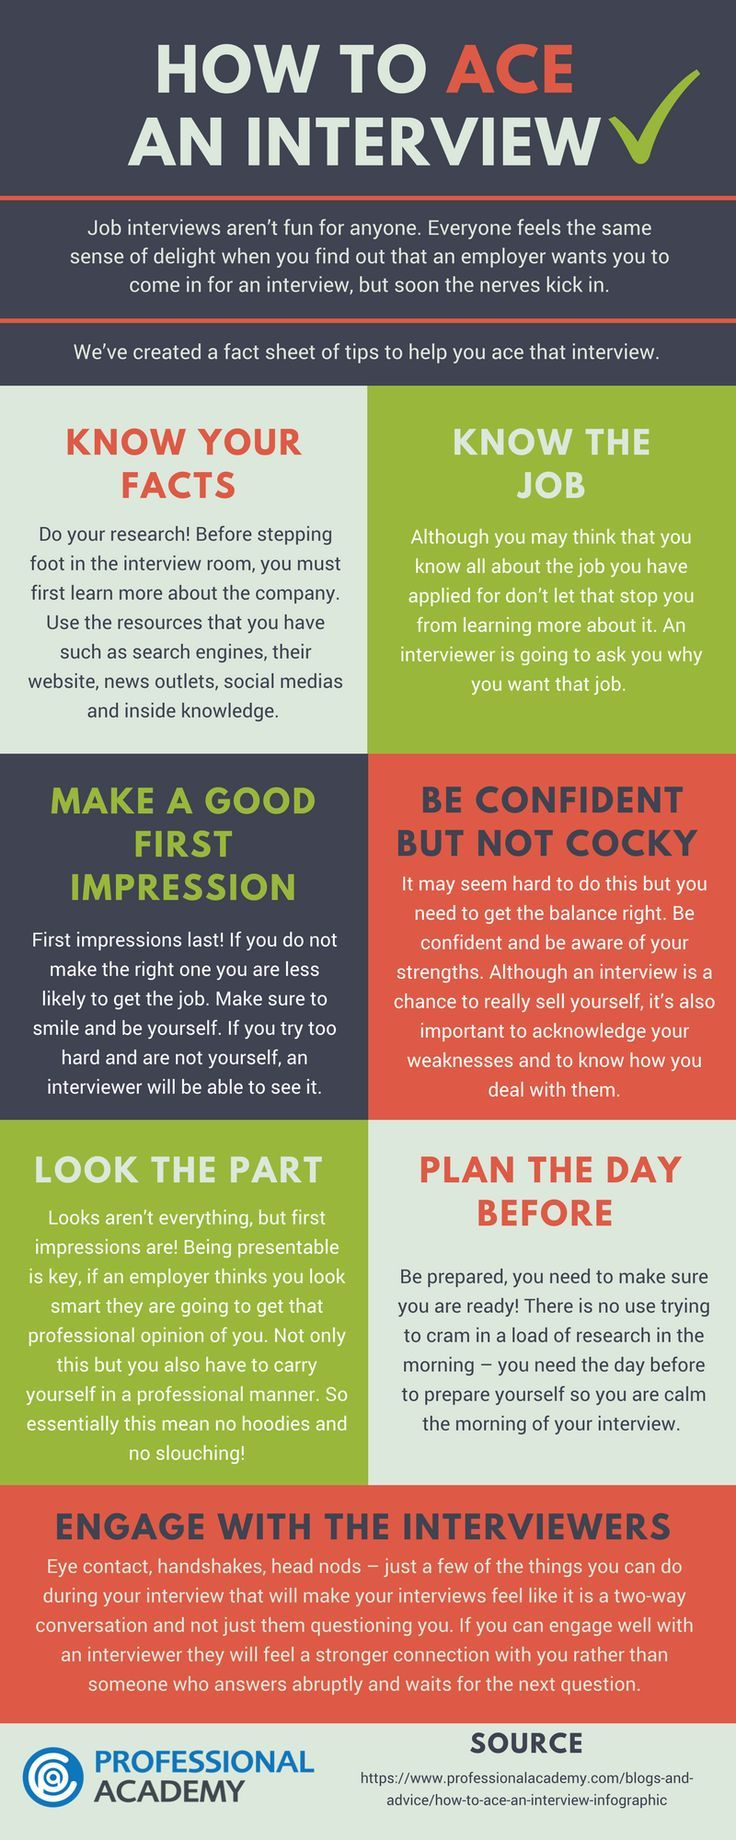 How to Ace a Job Interview Personal Development Advice